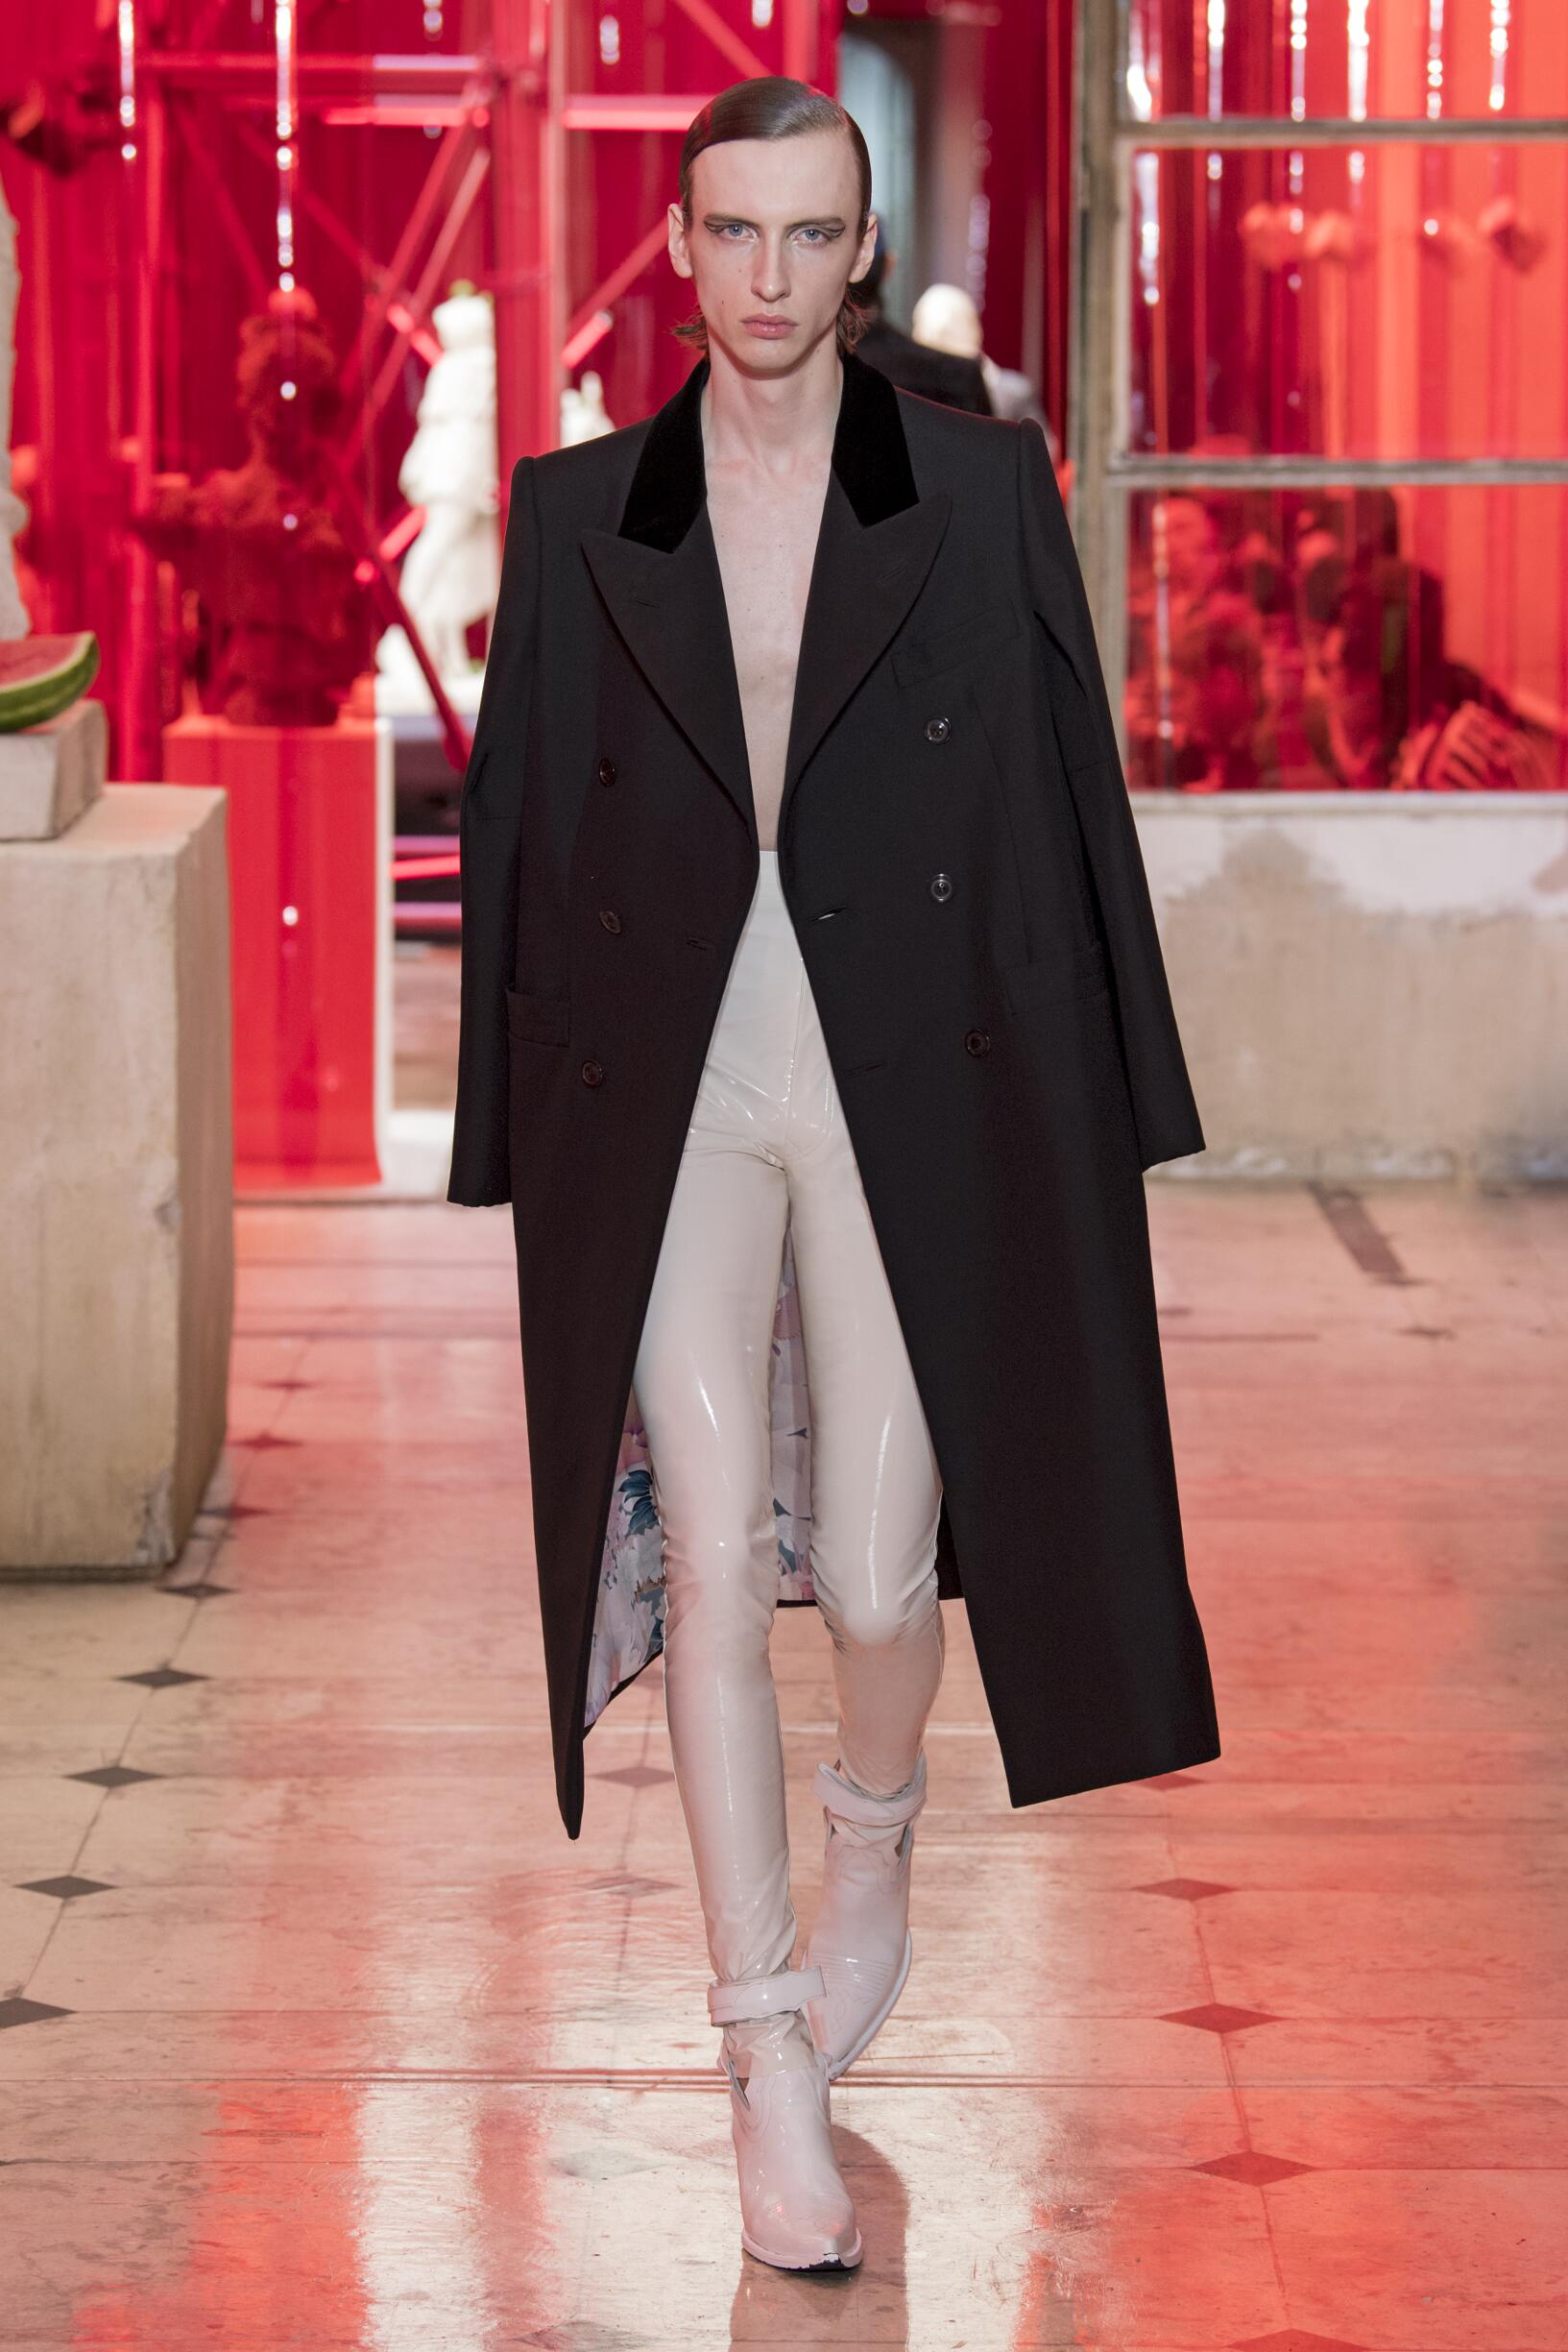 Maison Margiela Spring Summer 2019 Men 39 S Collection The